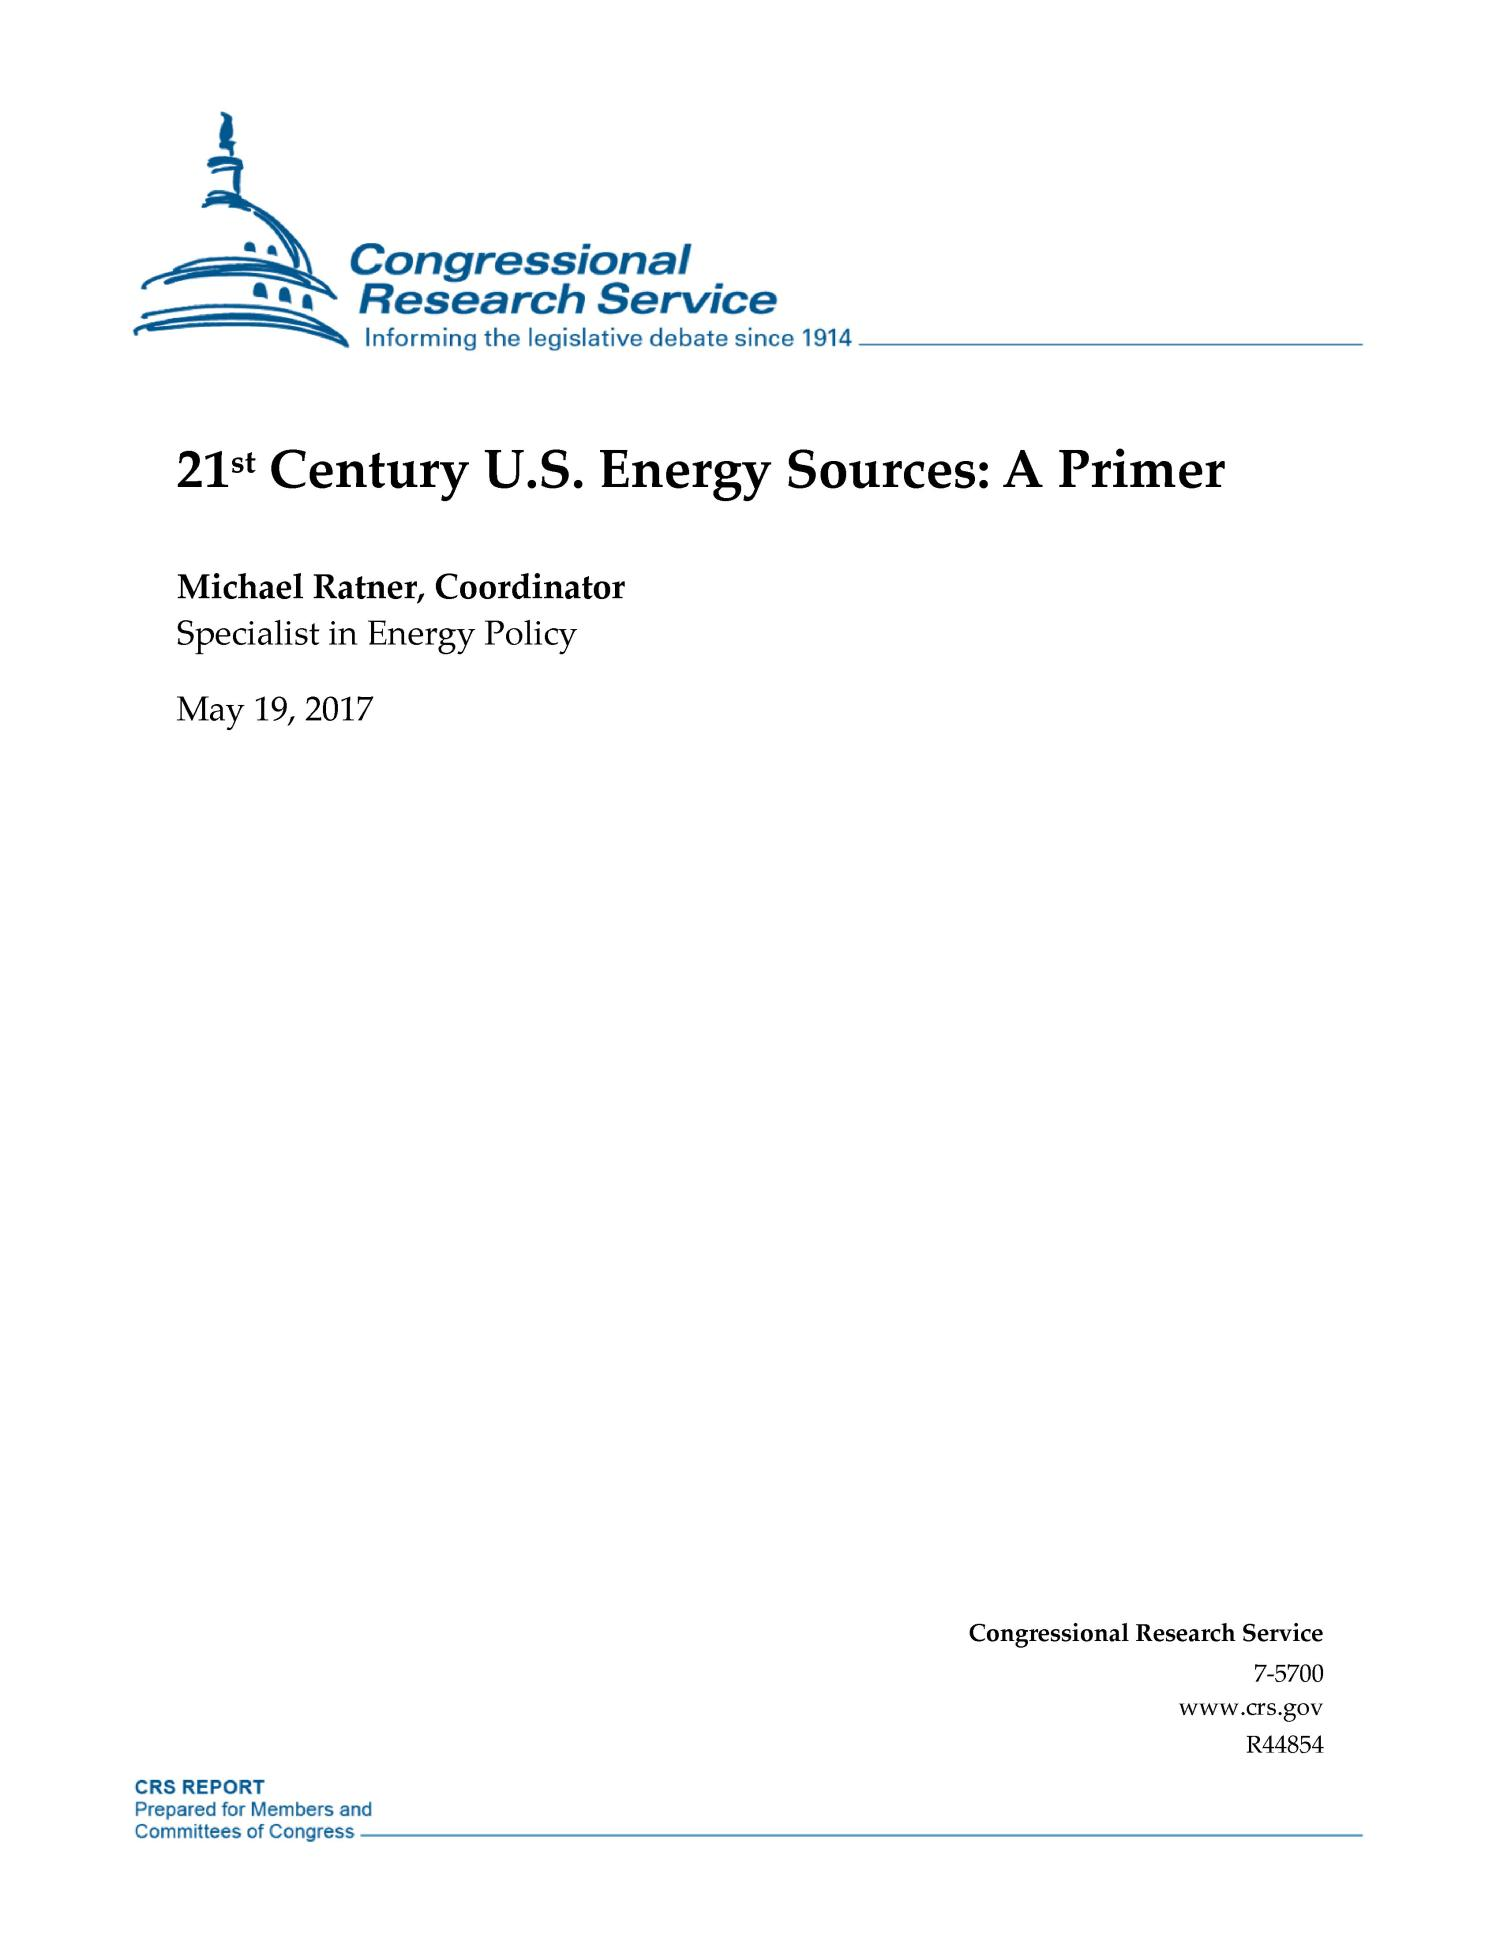 21st Century U.S. Energy Sources: A Primer                                                                                                      [Sequence #]: 1 of 40